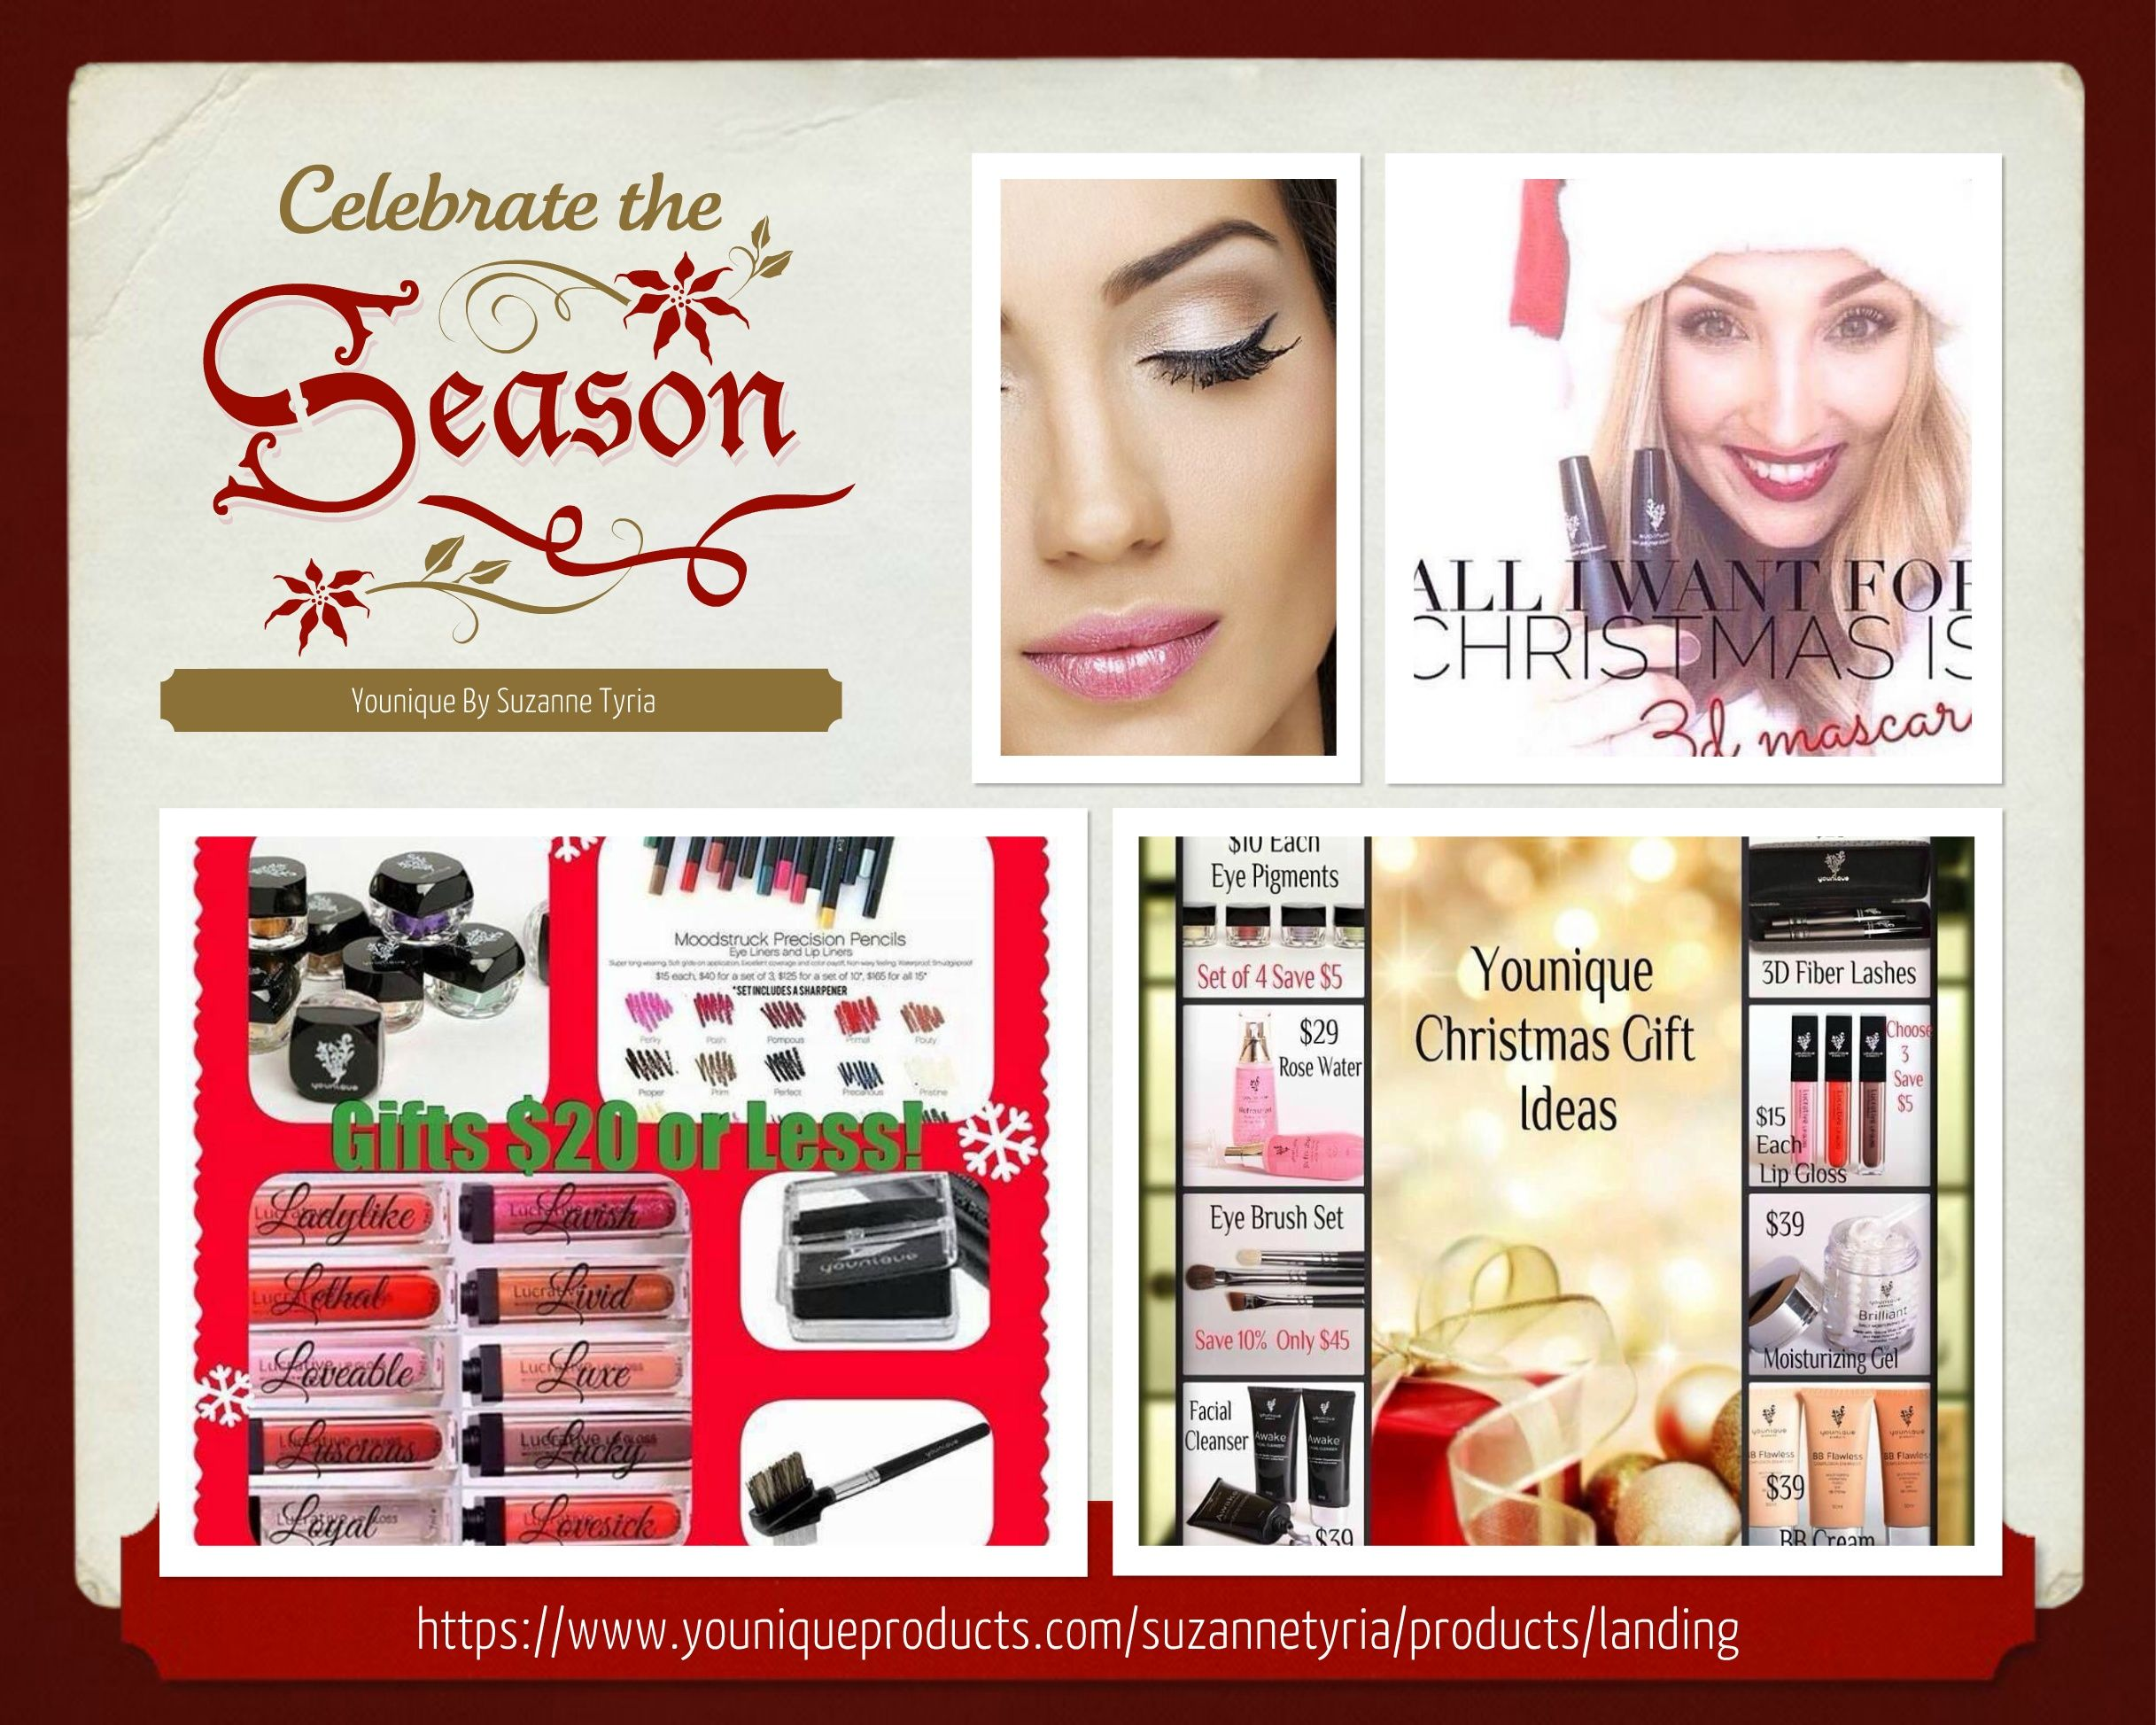 Need gift ideas? https://www.youniqueproducts.com/suzannetyria/products/landing